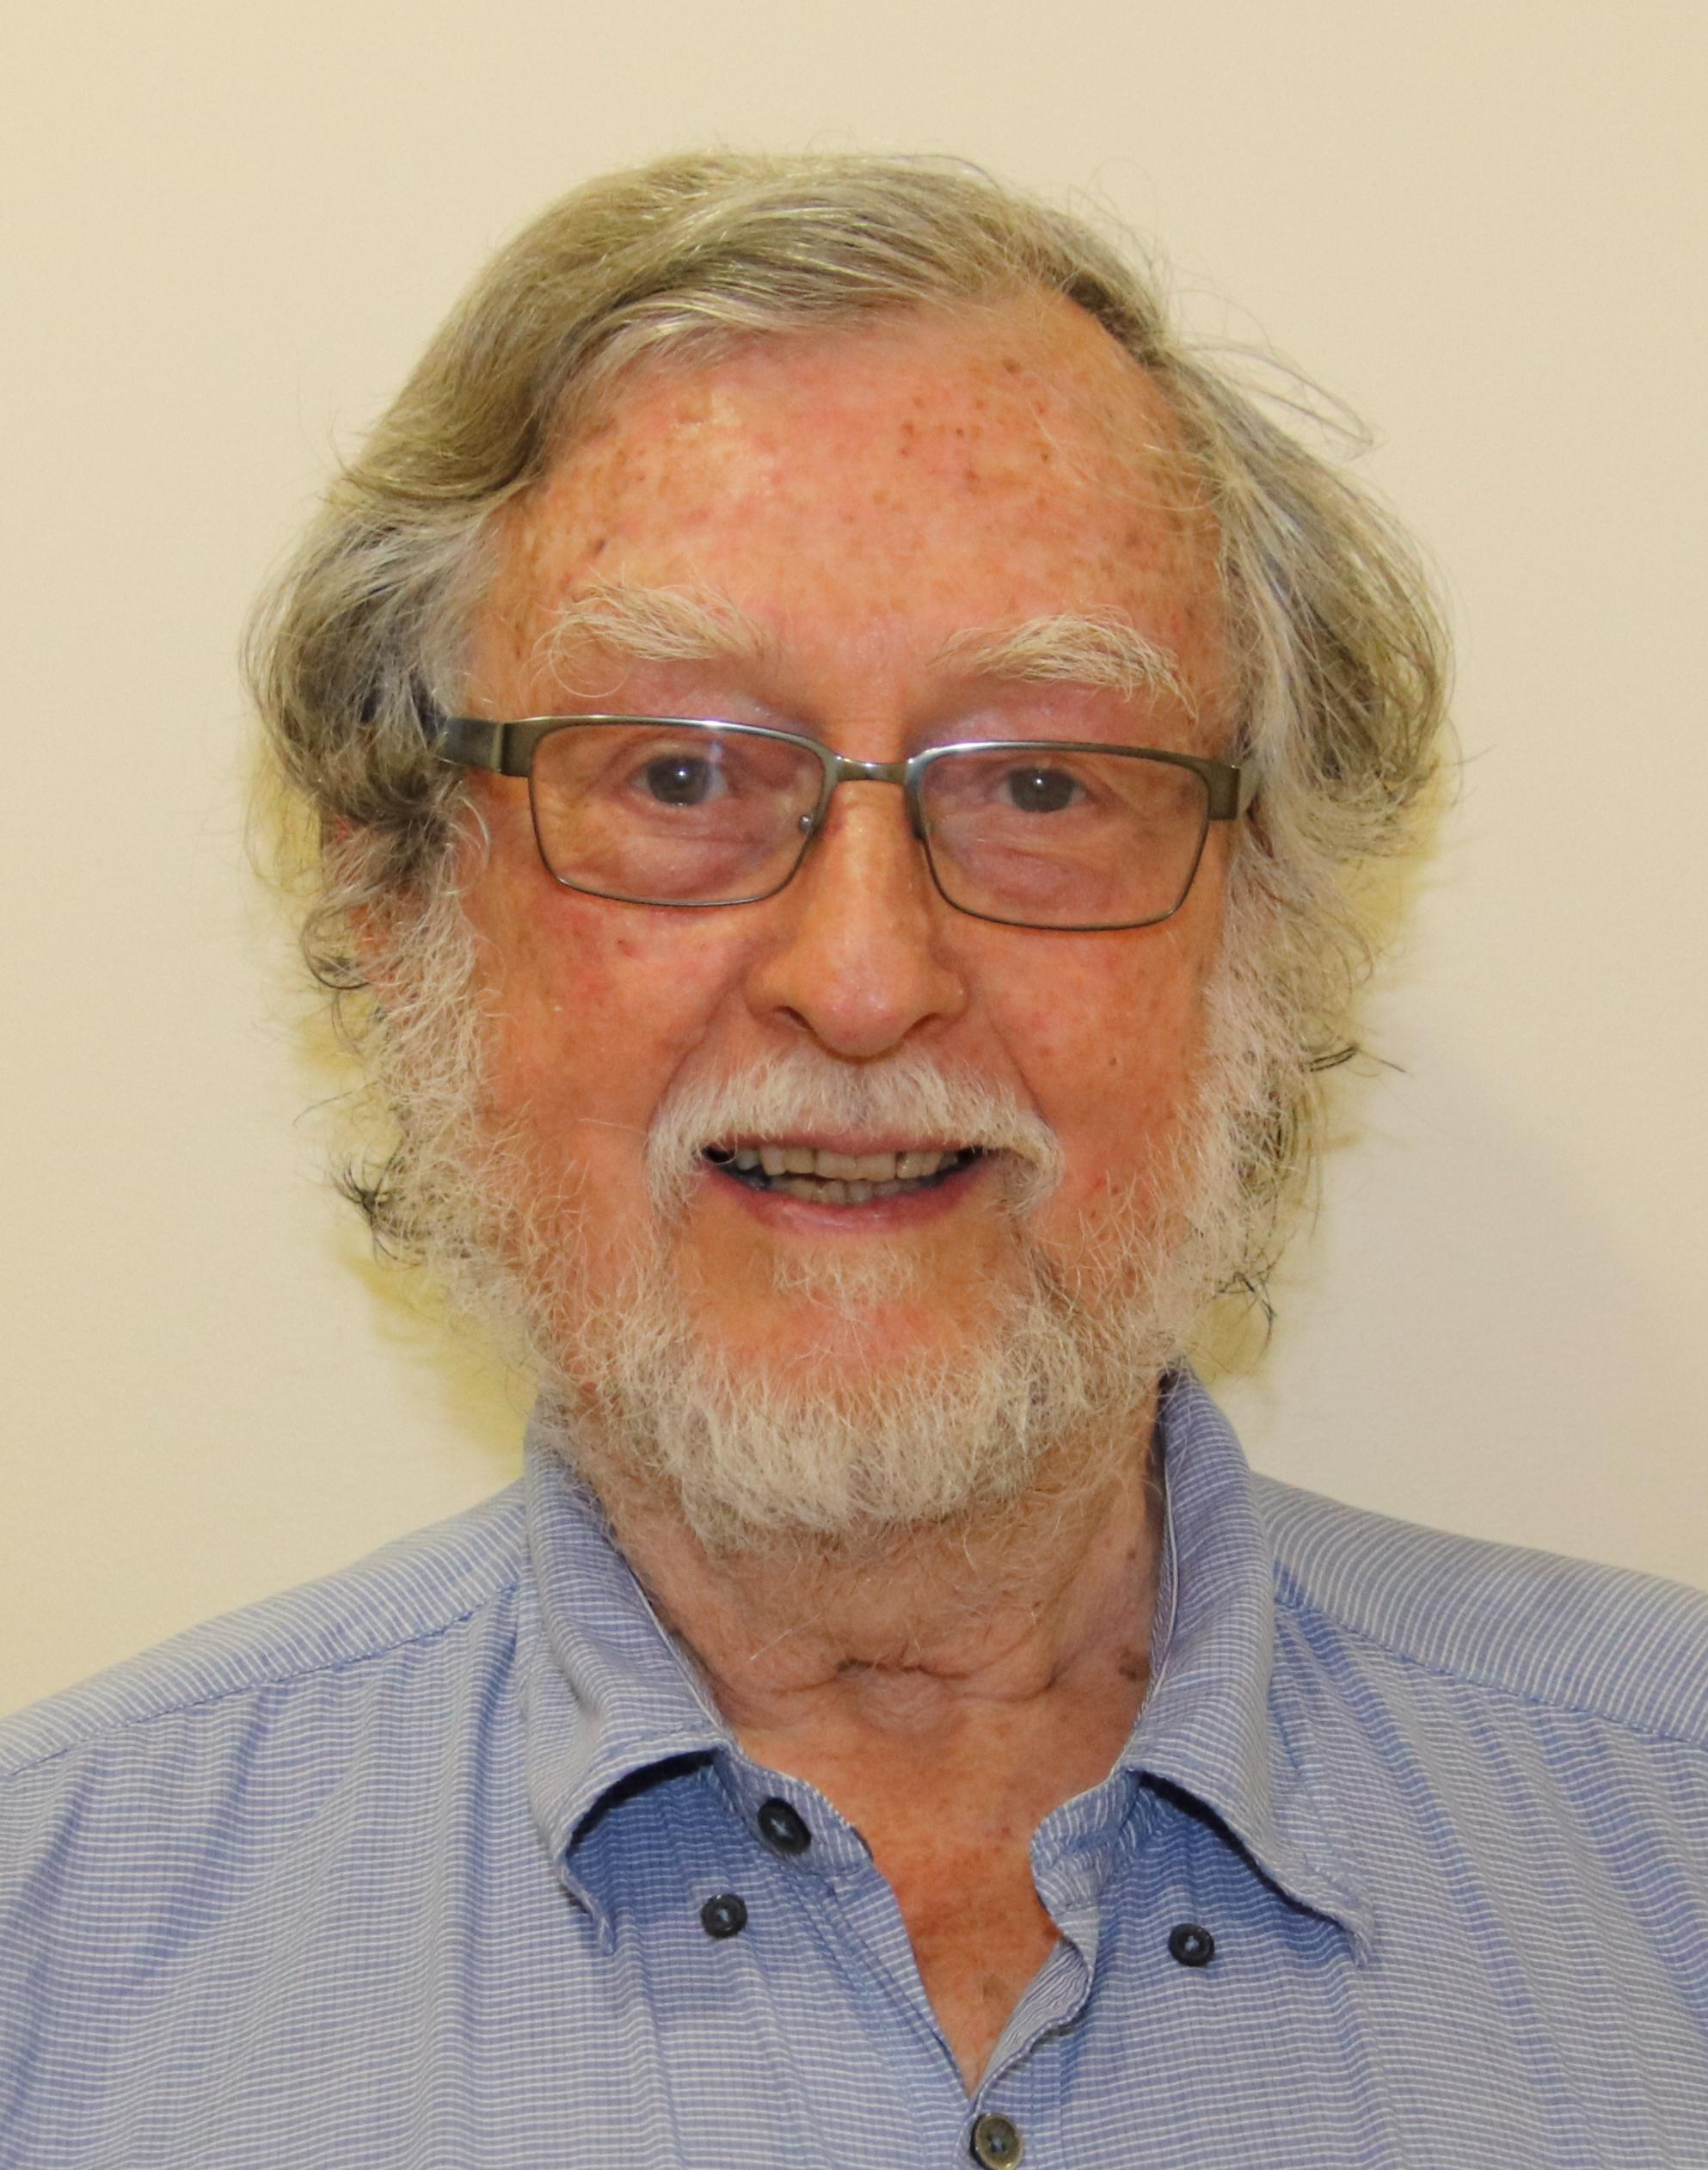 Emeritus Professor Bill Breed